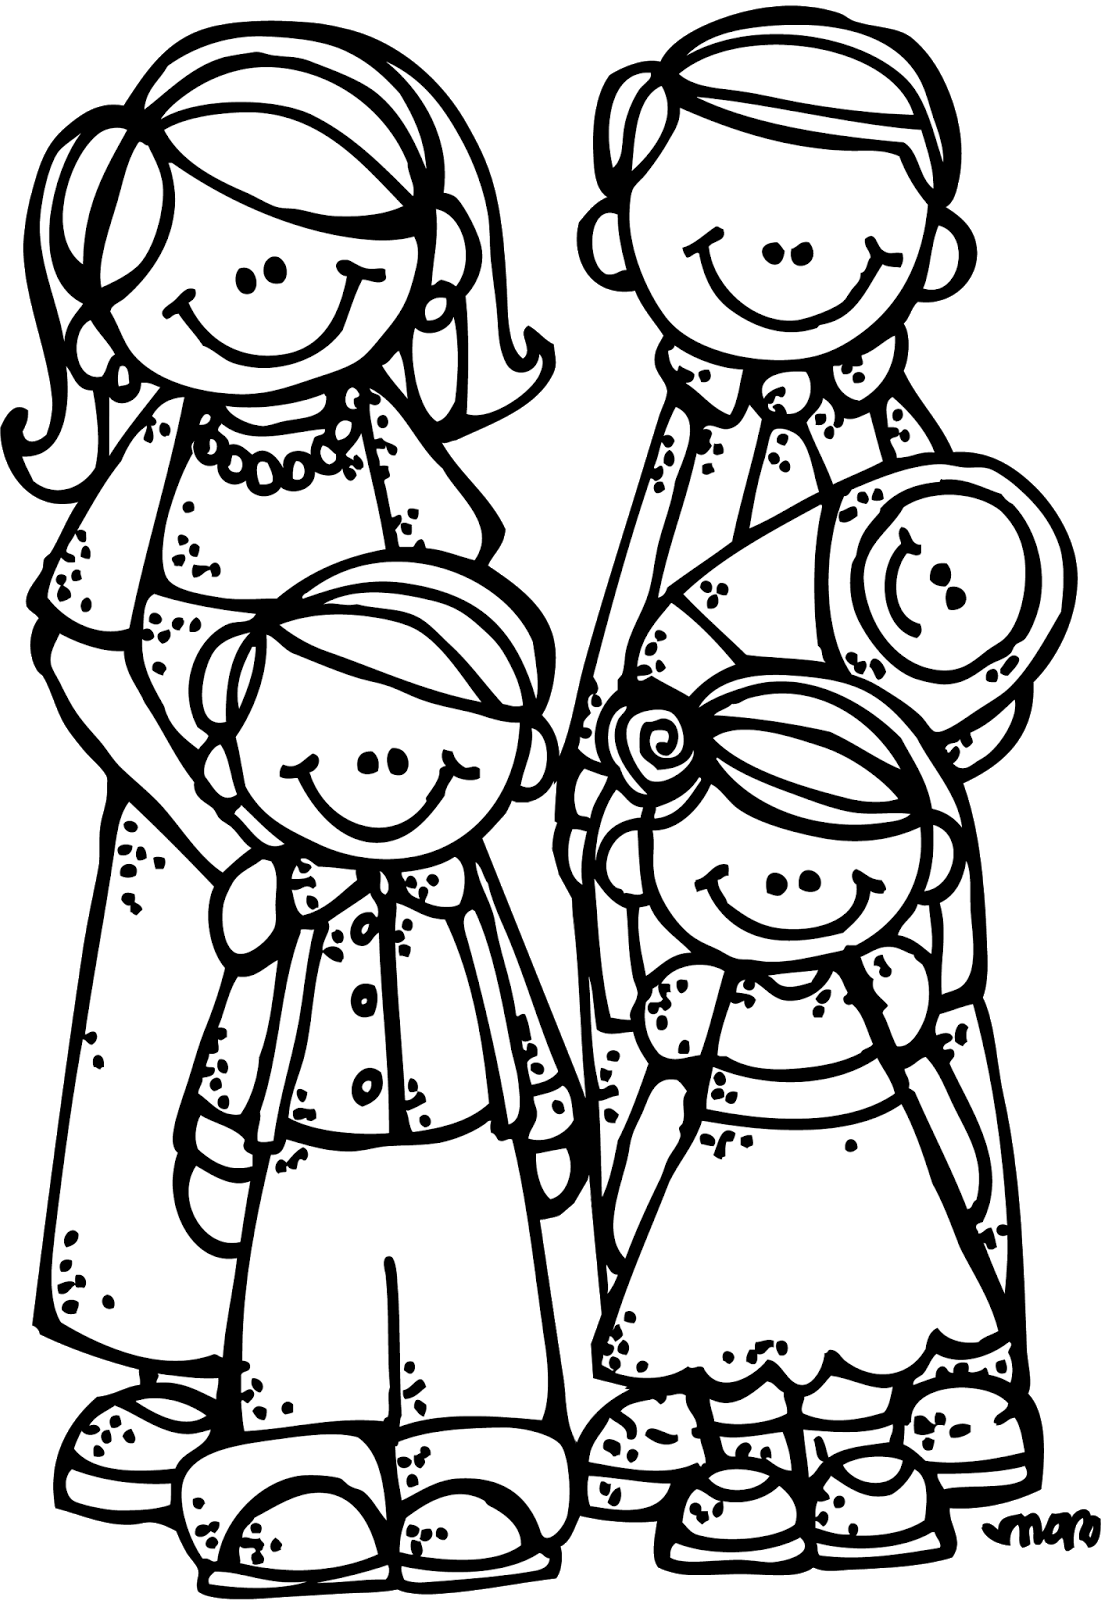 Family house clipart transparent 28+ Collection of Black And White Family Clipart | High quality ... transparent